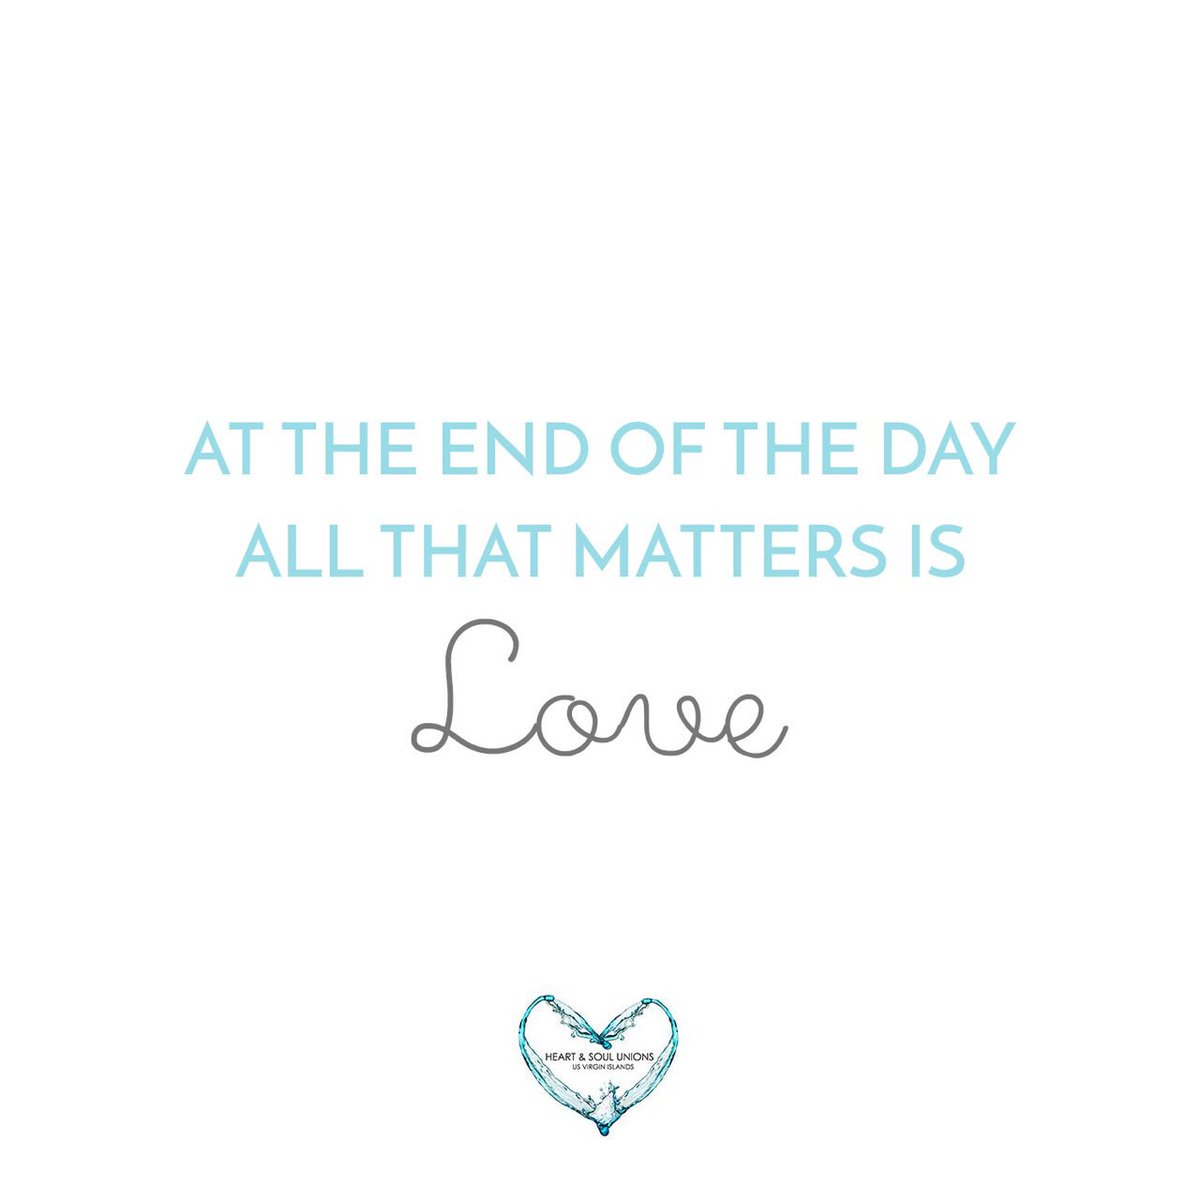 At the end of the day, all that matters is love   #lovequote #wedding<br>http://pic.twitter.com/V4C6s77fDd